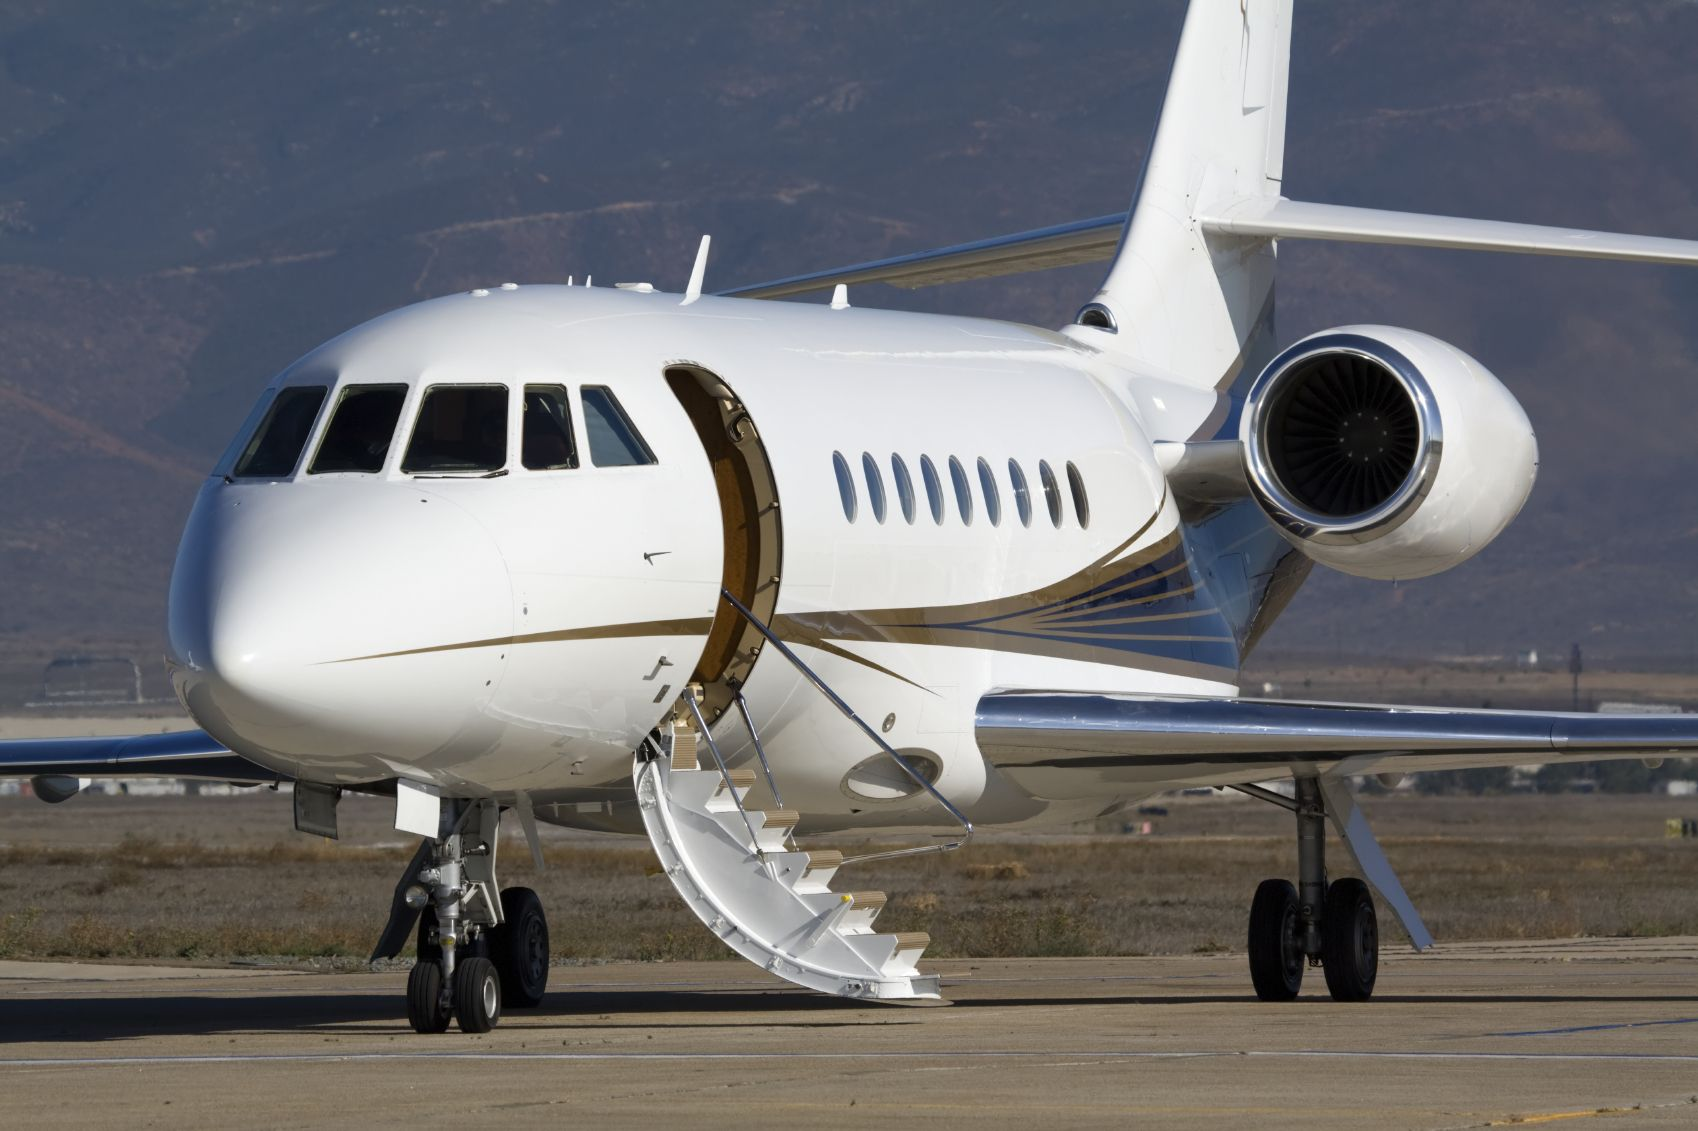 Somewhere a gulfstream jet is waiting for you to walk on board and ...